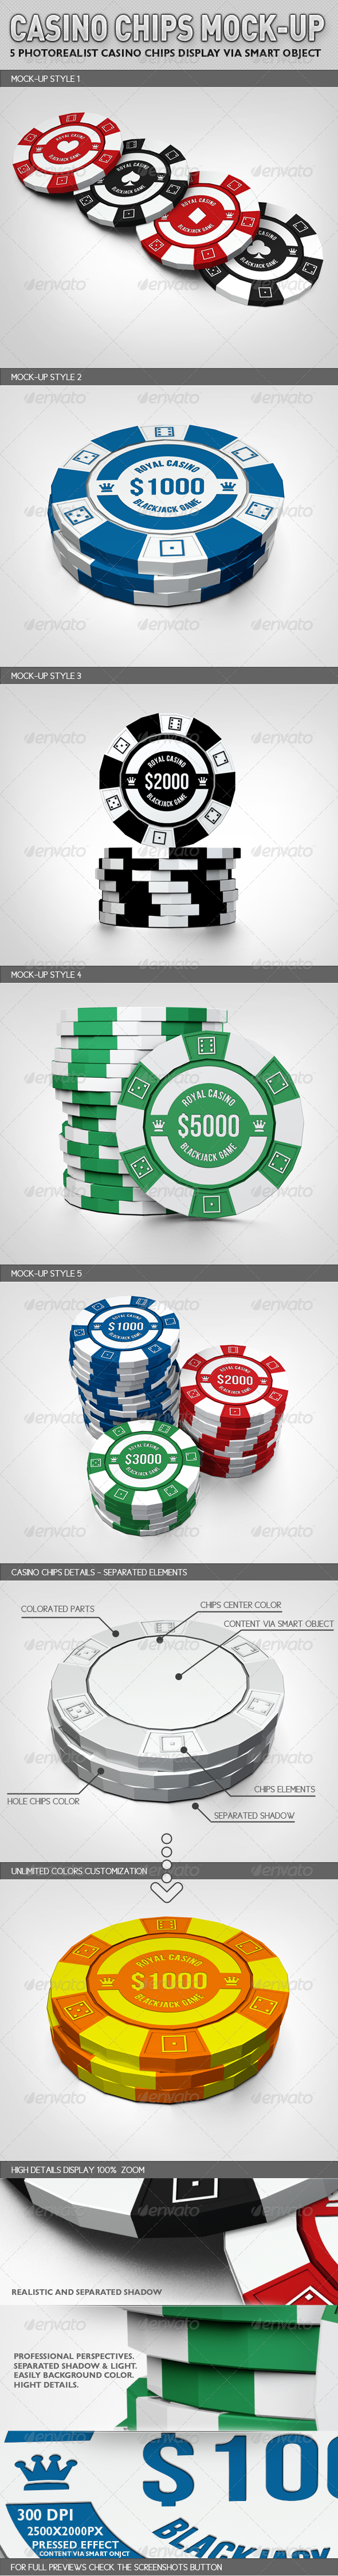 GraphicRiver Casino Chips Mock-up 2979079